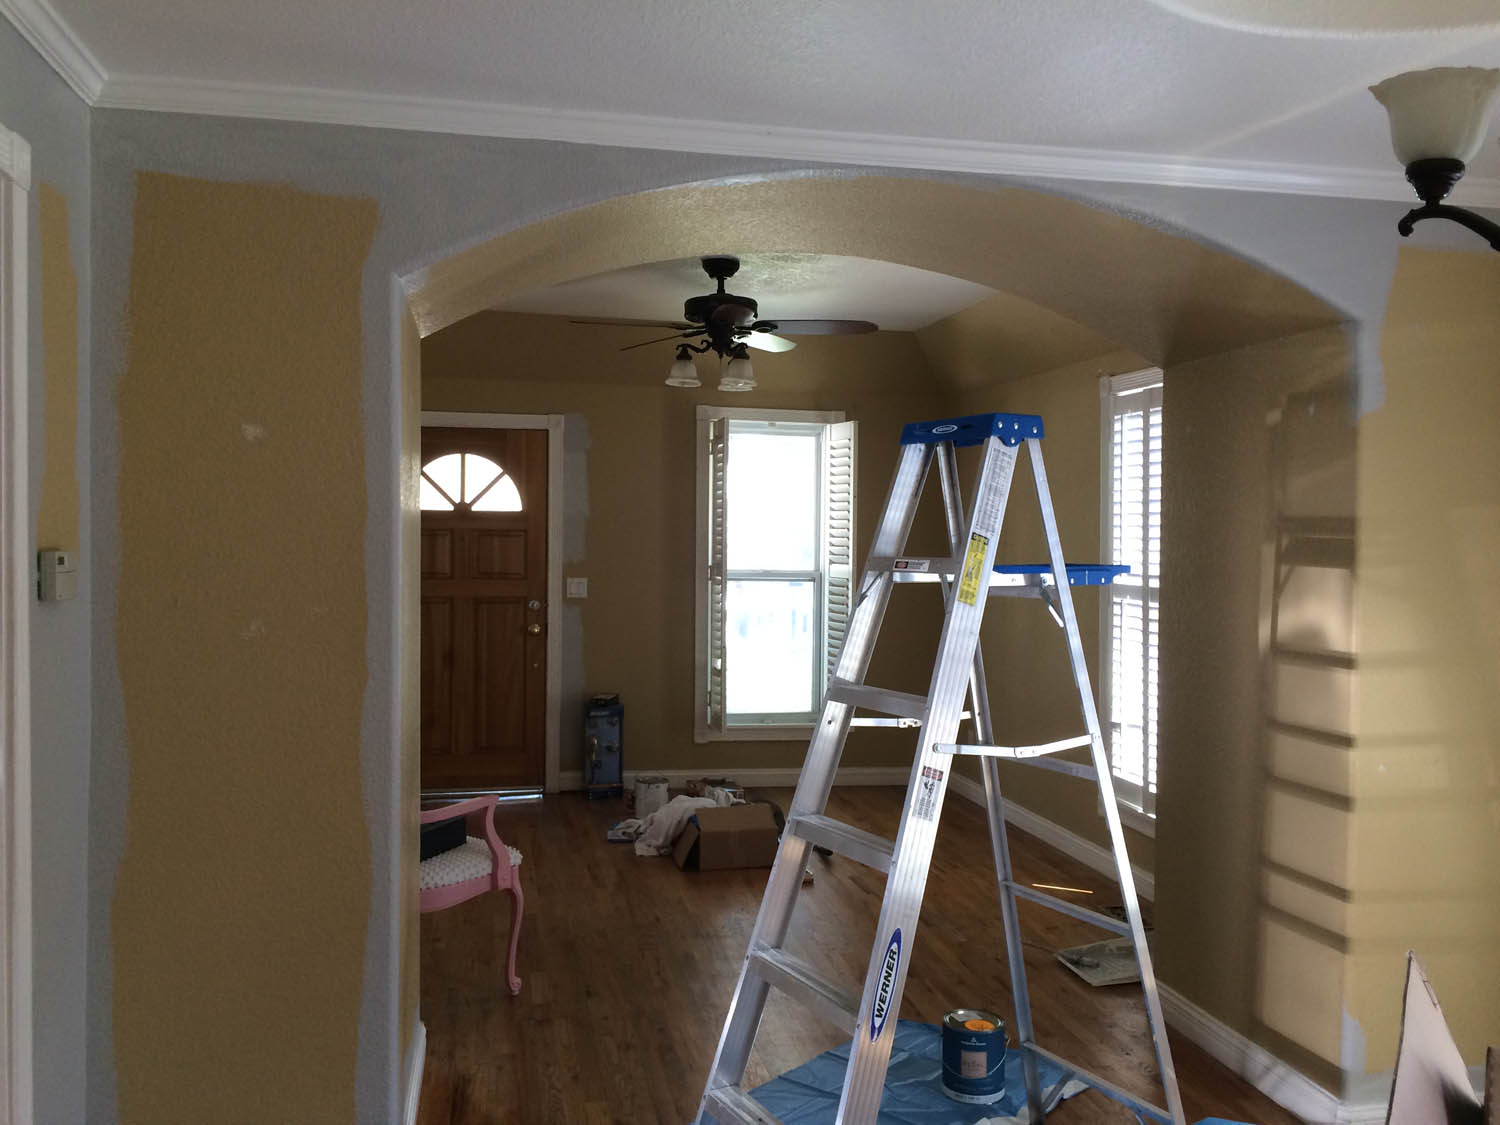 View into living room before renovation with ladder in front